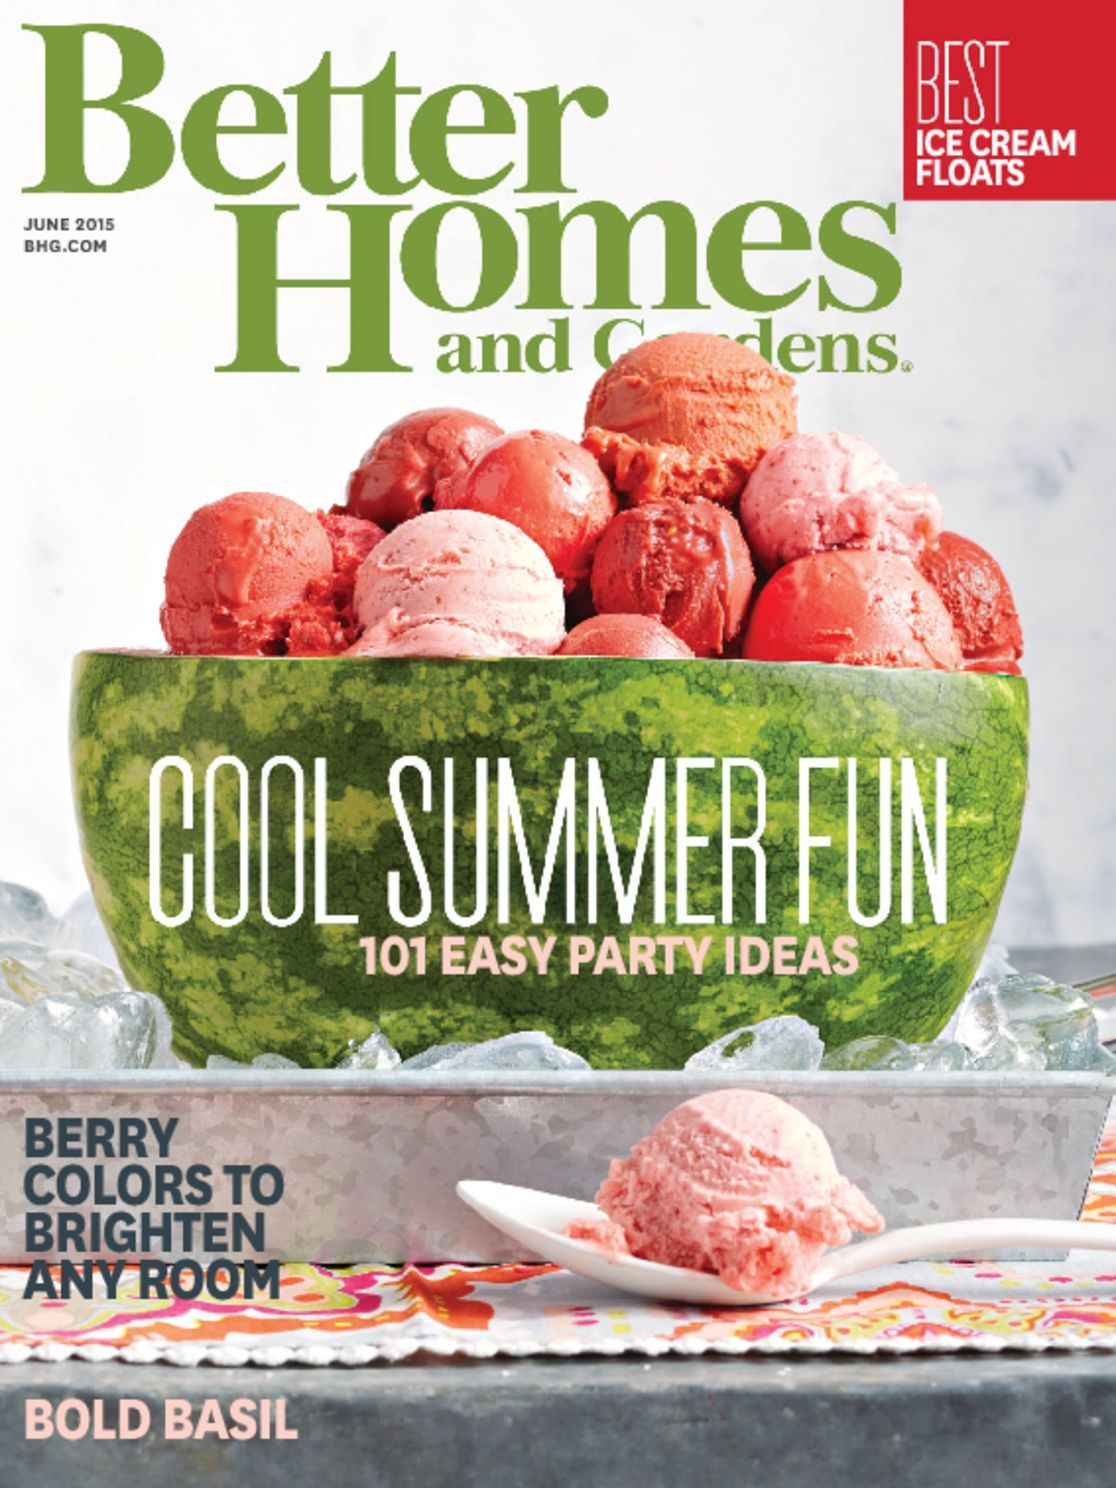 Better homes and garden walking on sunshine Bhg recipes may 2016